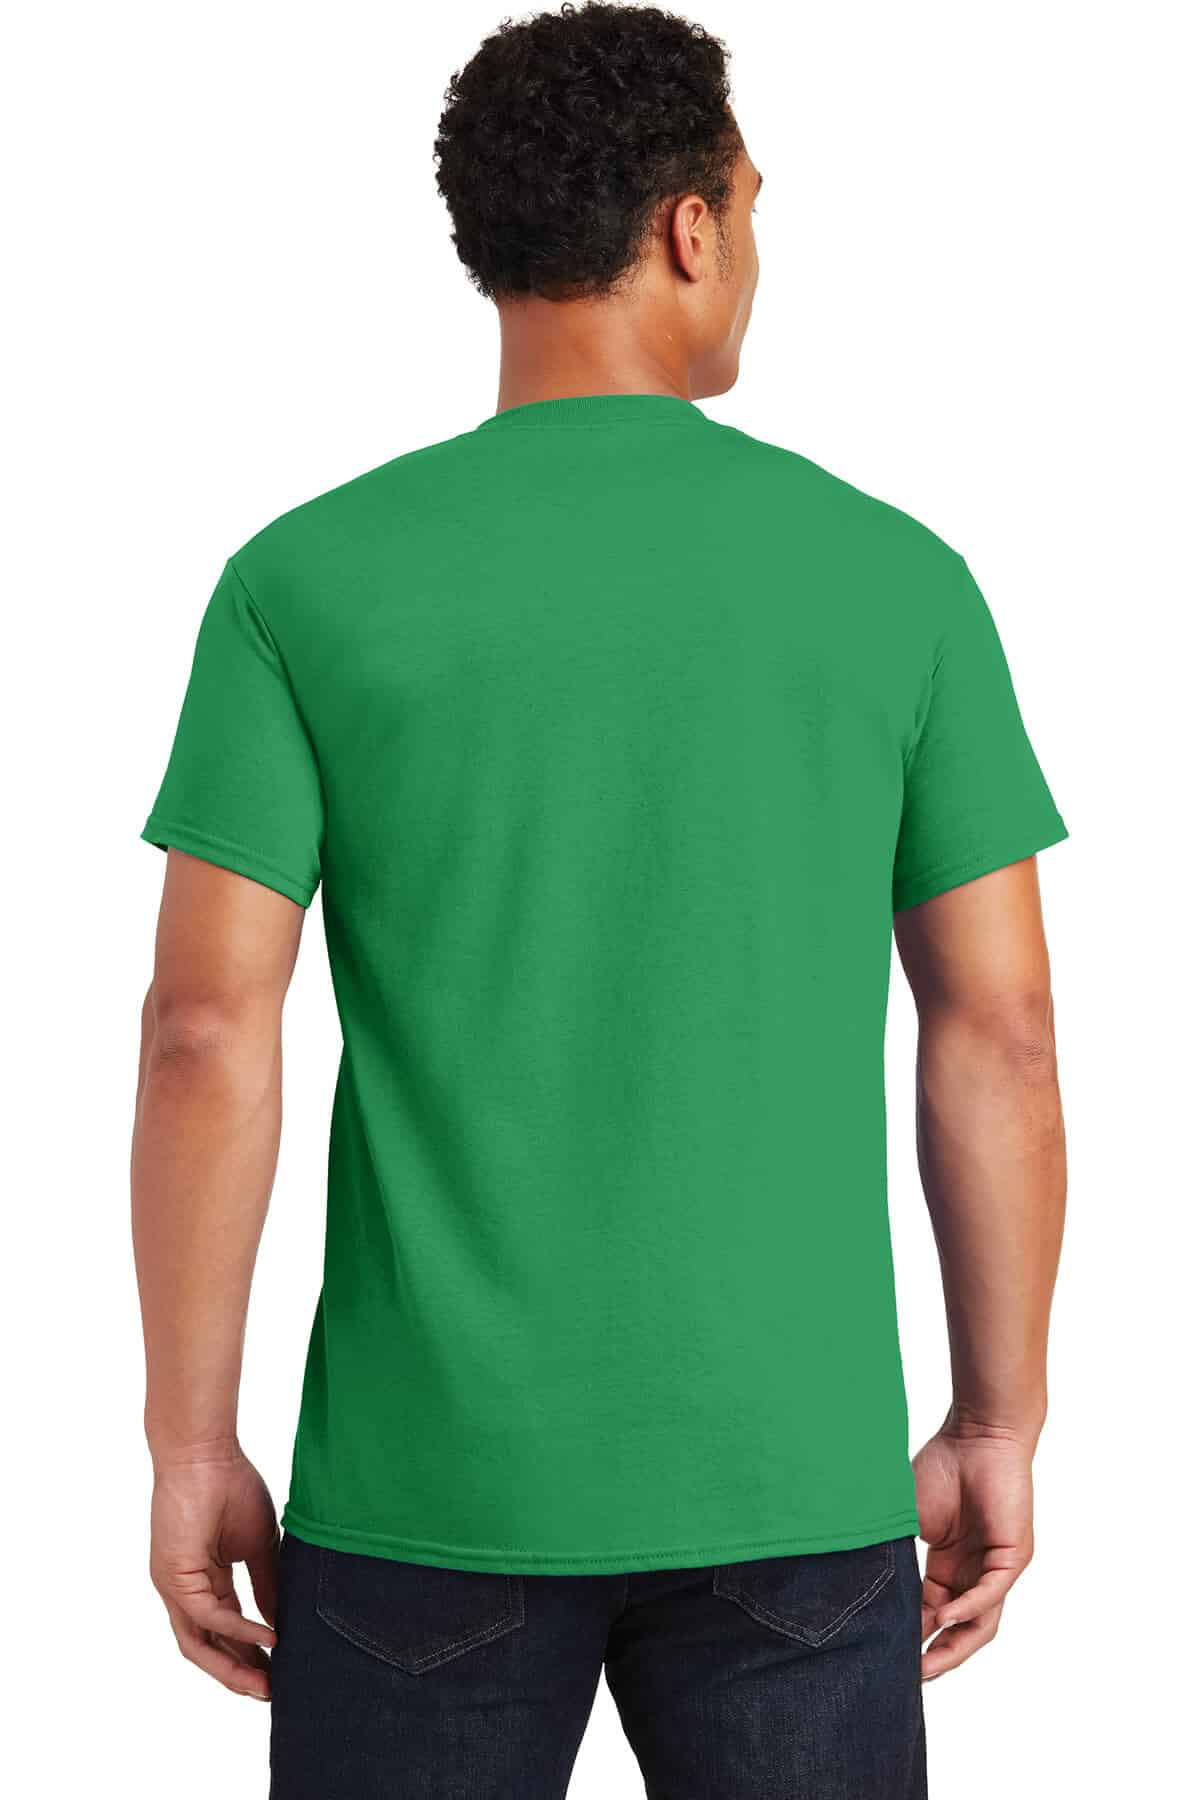 Irish Green TeeShirt Back